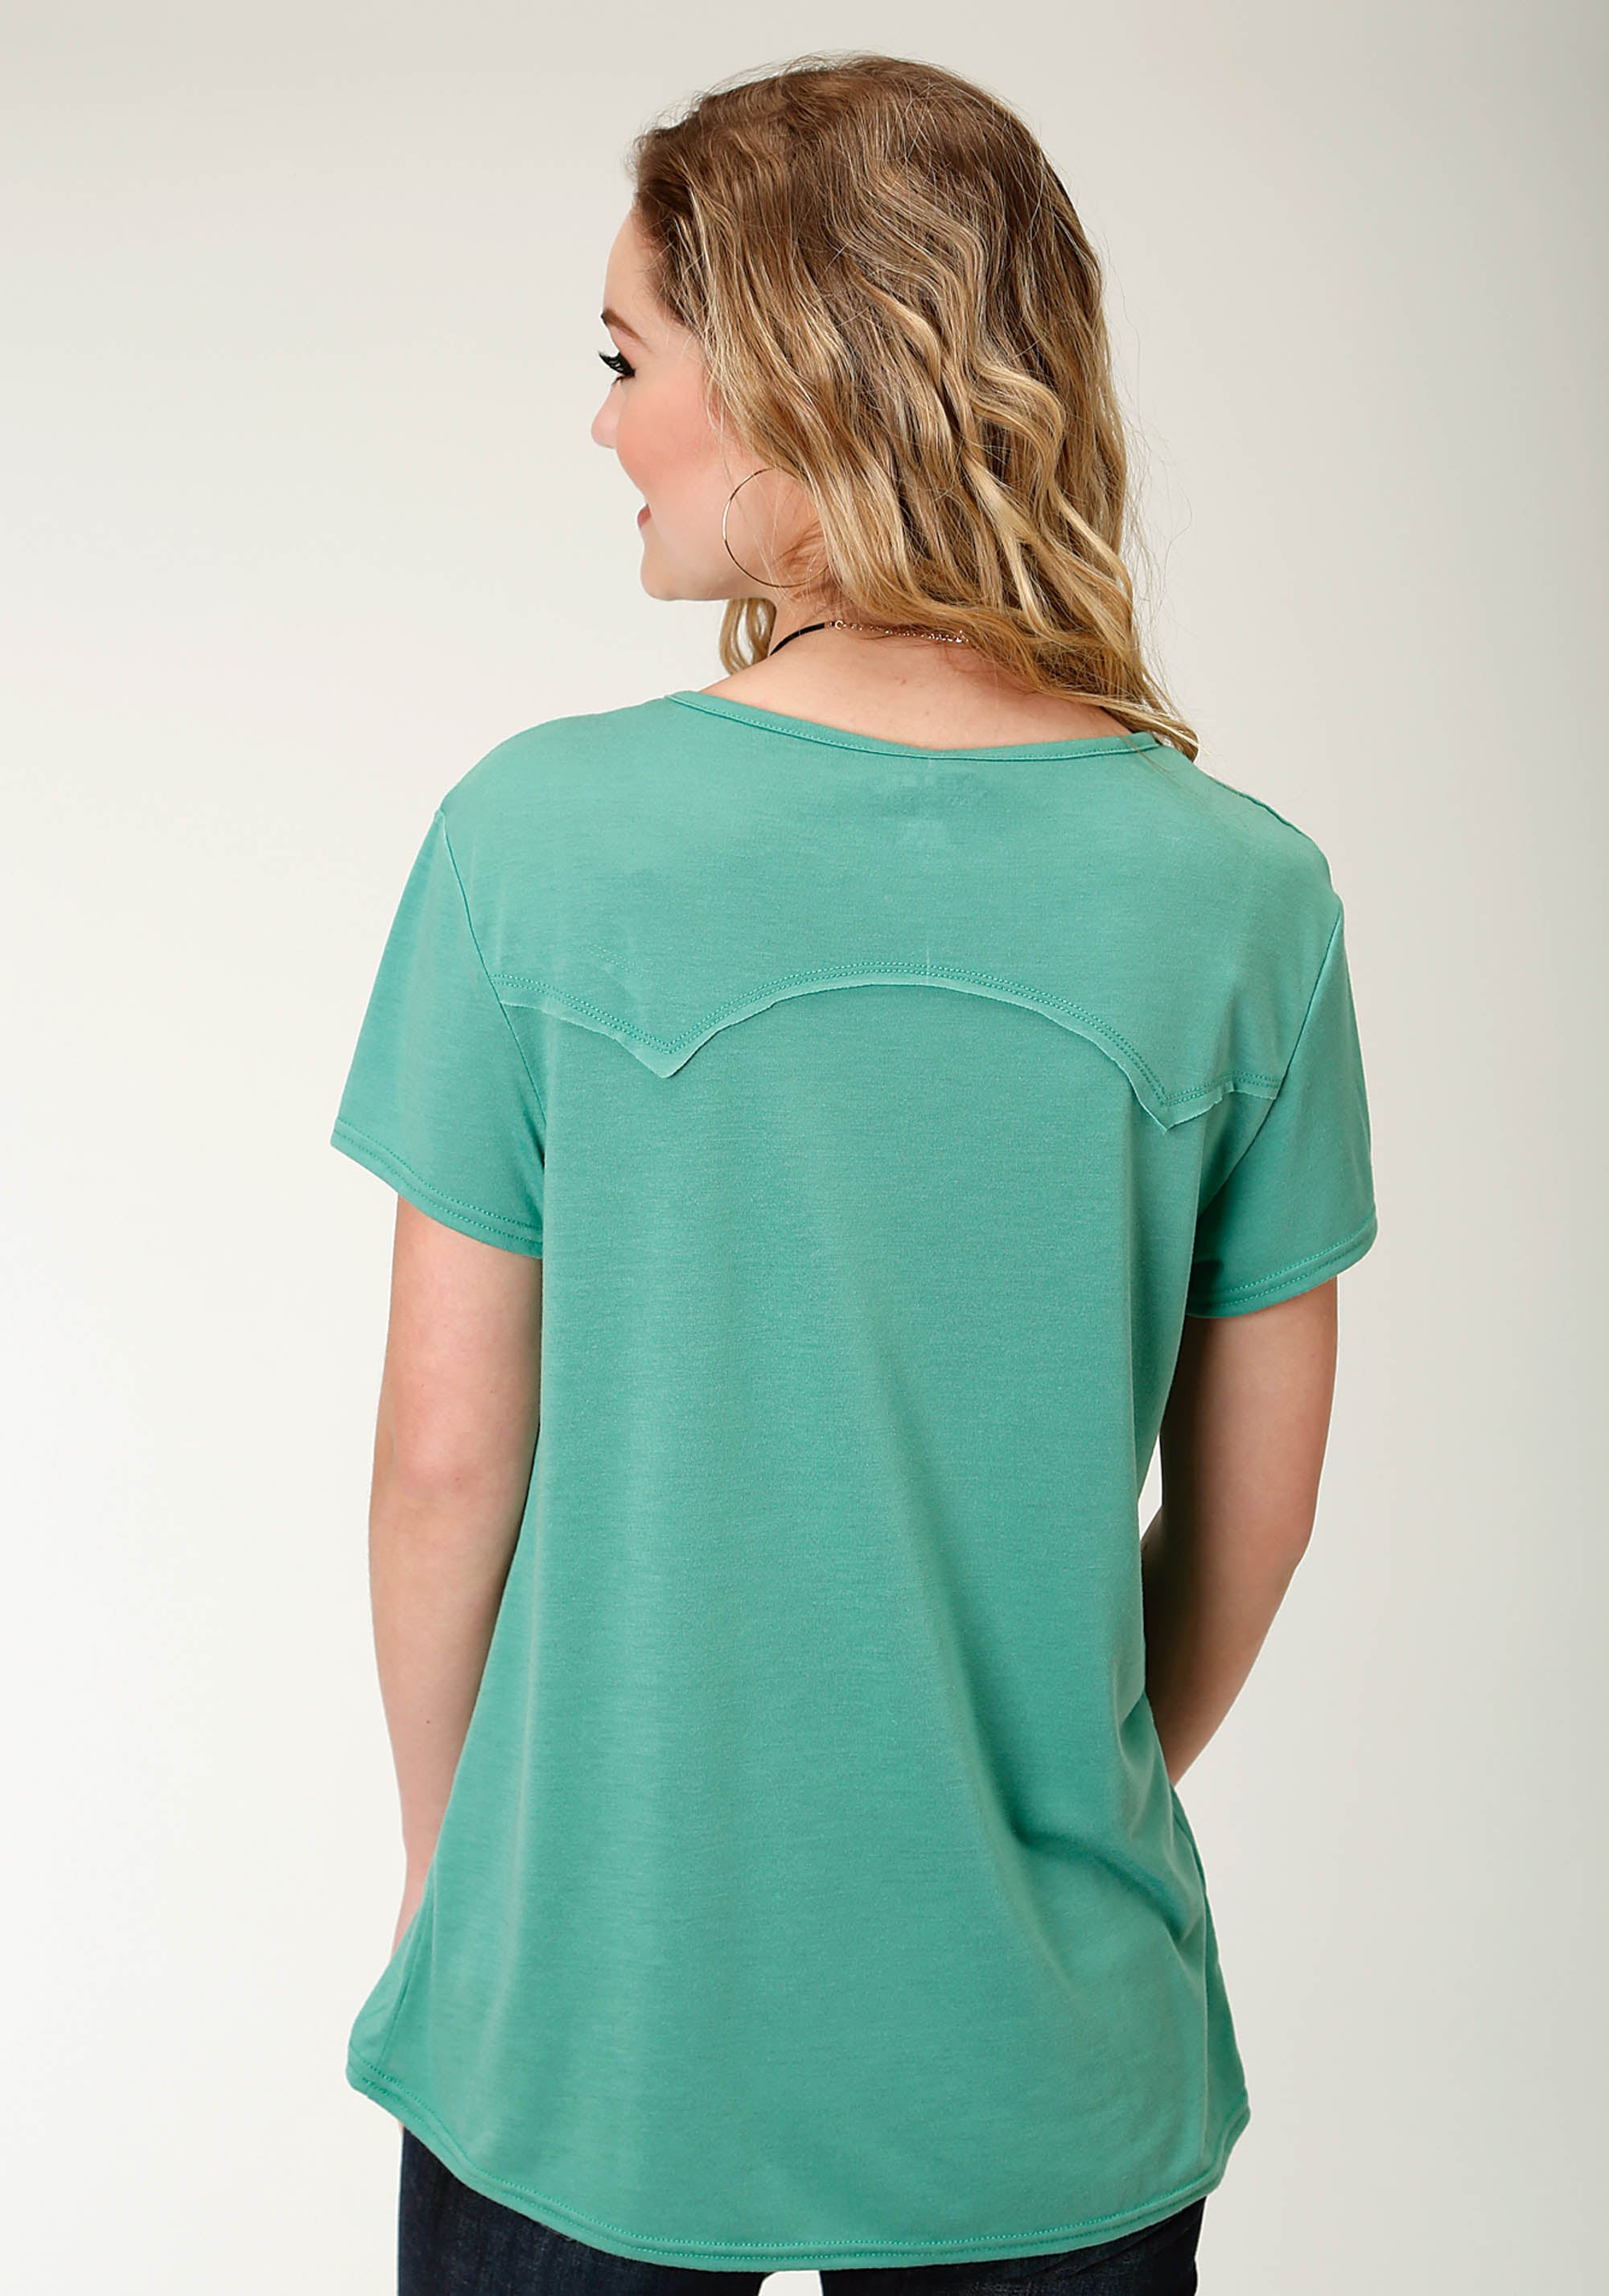 ROPER WOMENS GREEN 2250 POLY/RAYON JERSEY TEE FIVE STAR COLLECTION- FALL I SHORT SLEEVE